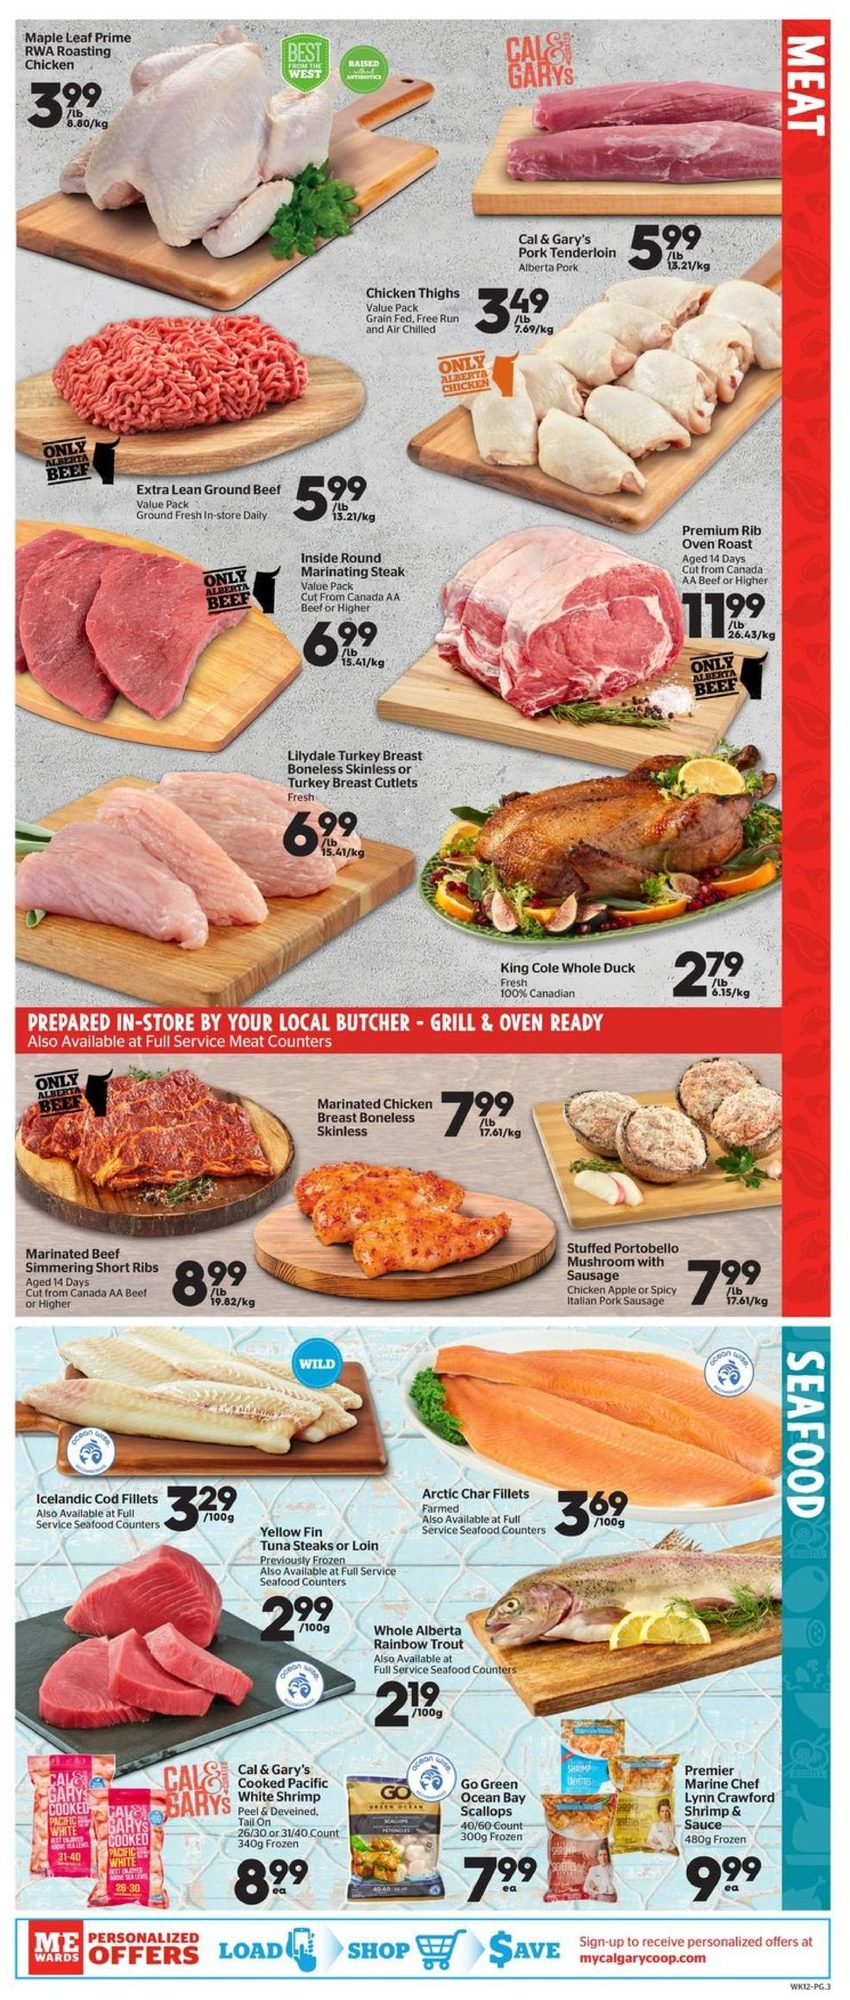 Calgary Co-op - Weekly Flyer Specials - Page 3